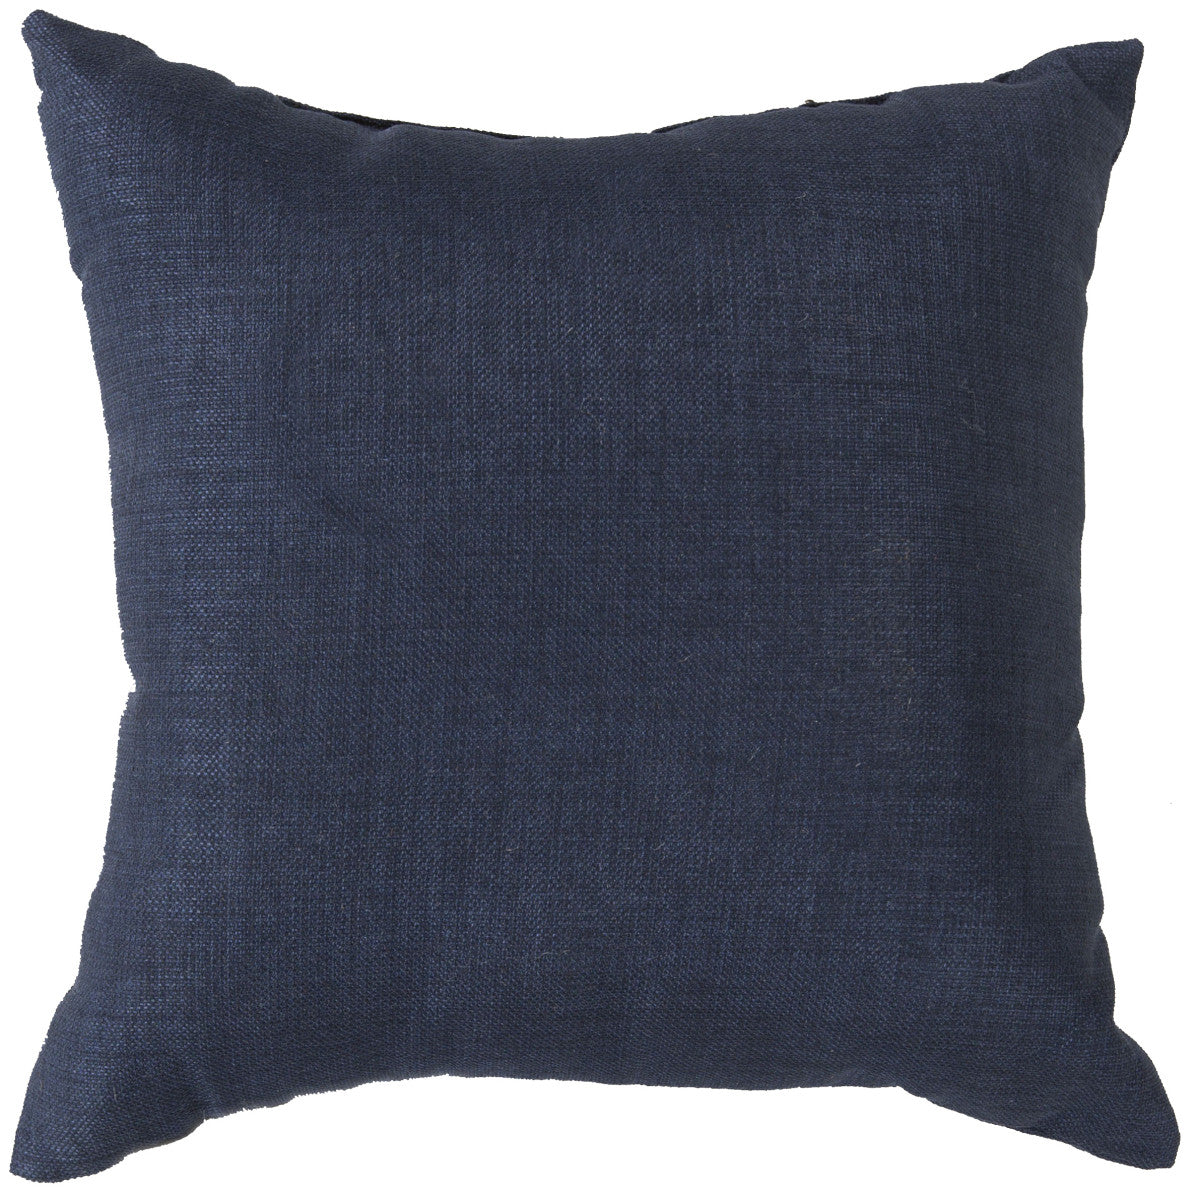 Surya Storm Stunning Solid Cover ZZ-405 Pillow